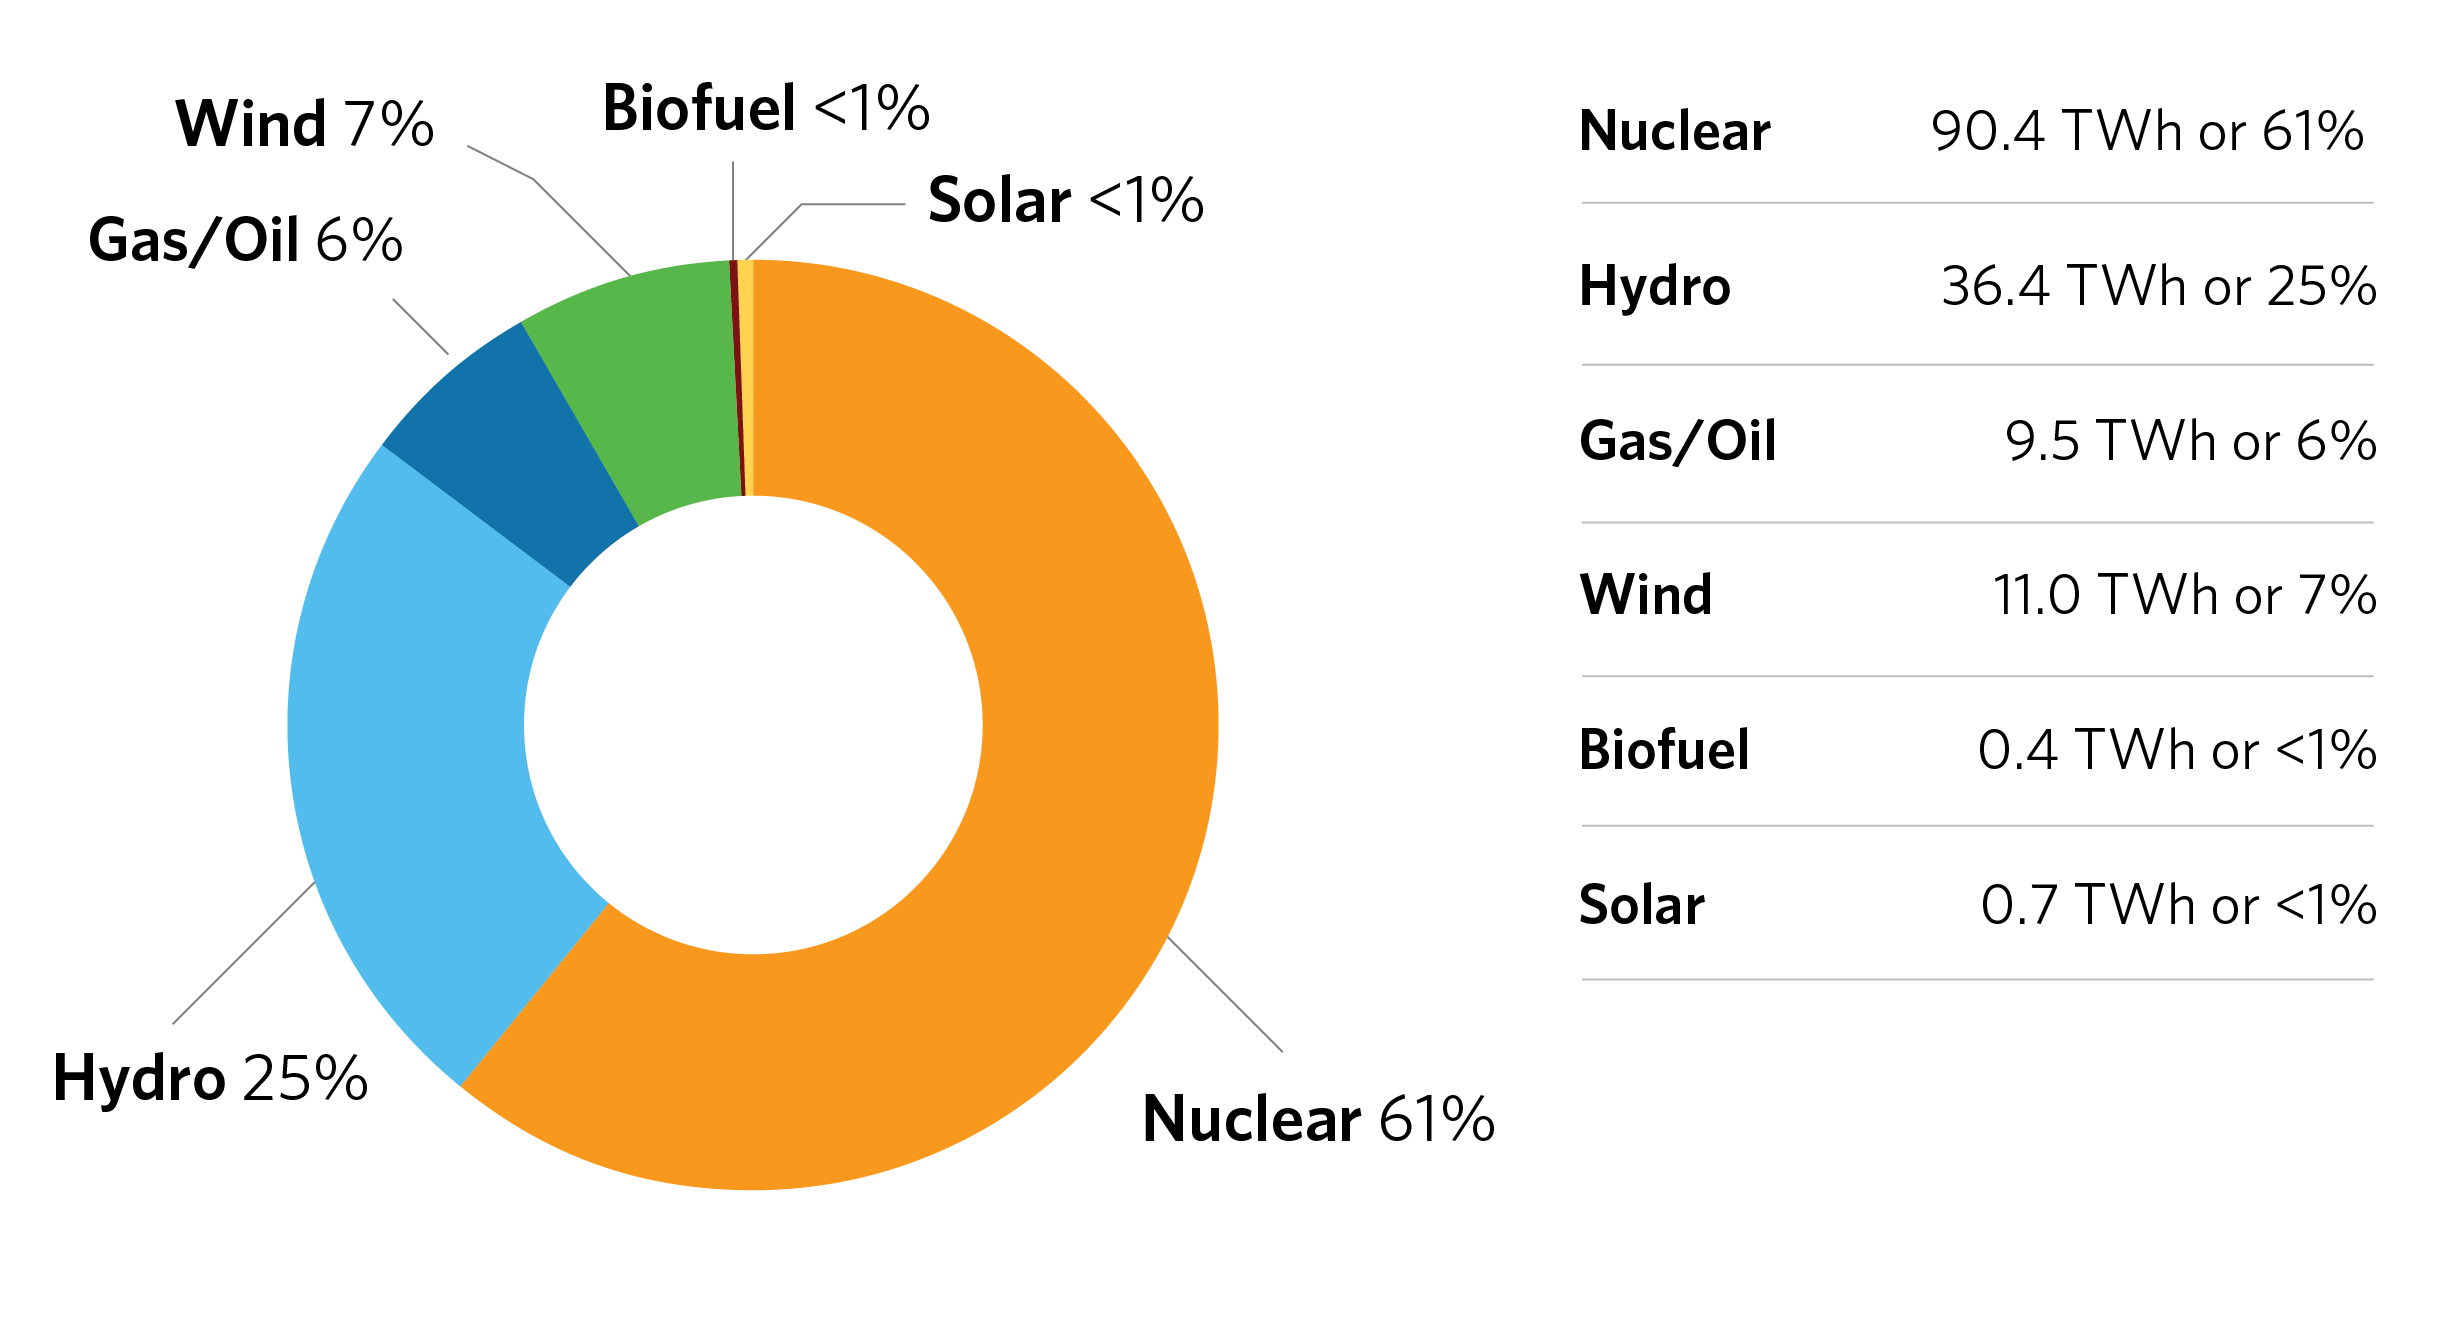 Output by Fuel Type: Nuclear 61%, Hydro 25%, Gas/Oil 6%, Wind 7%, Biofuel <1%, Solar <1%